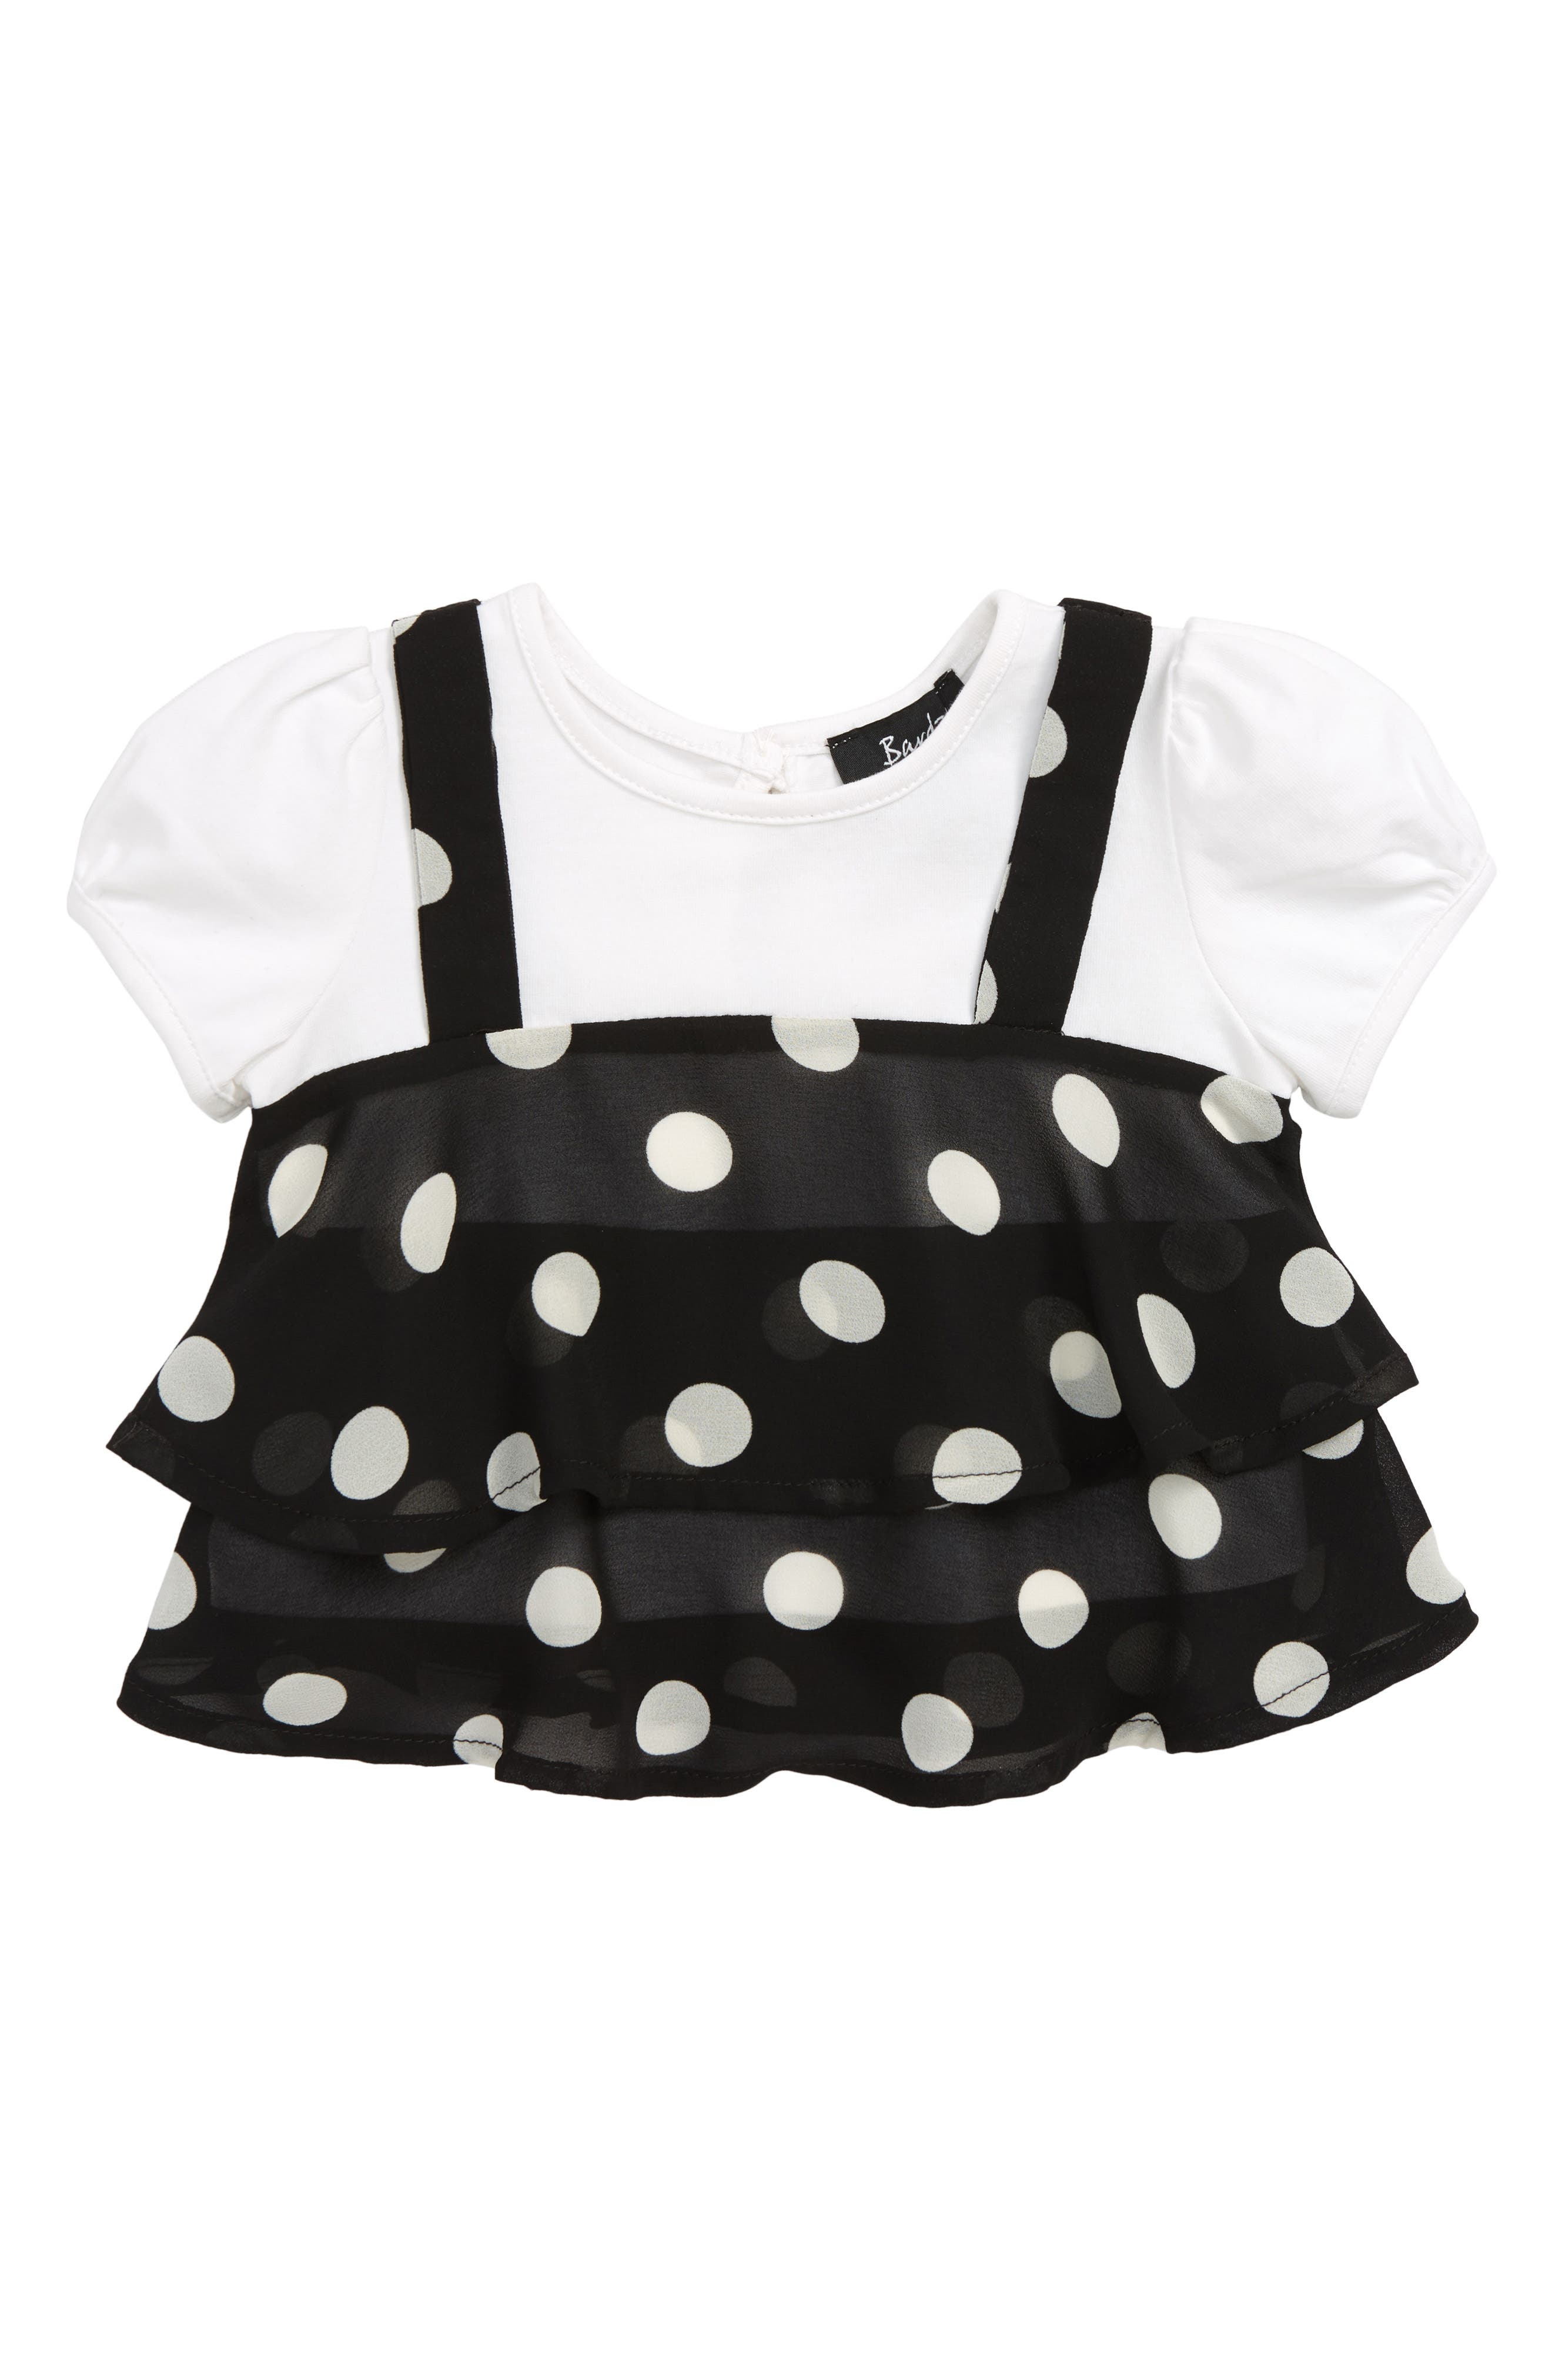 BARDOT JUNIOR Kiera Spot Top, Main, color, 001